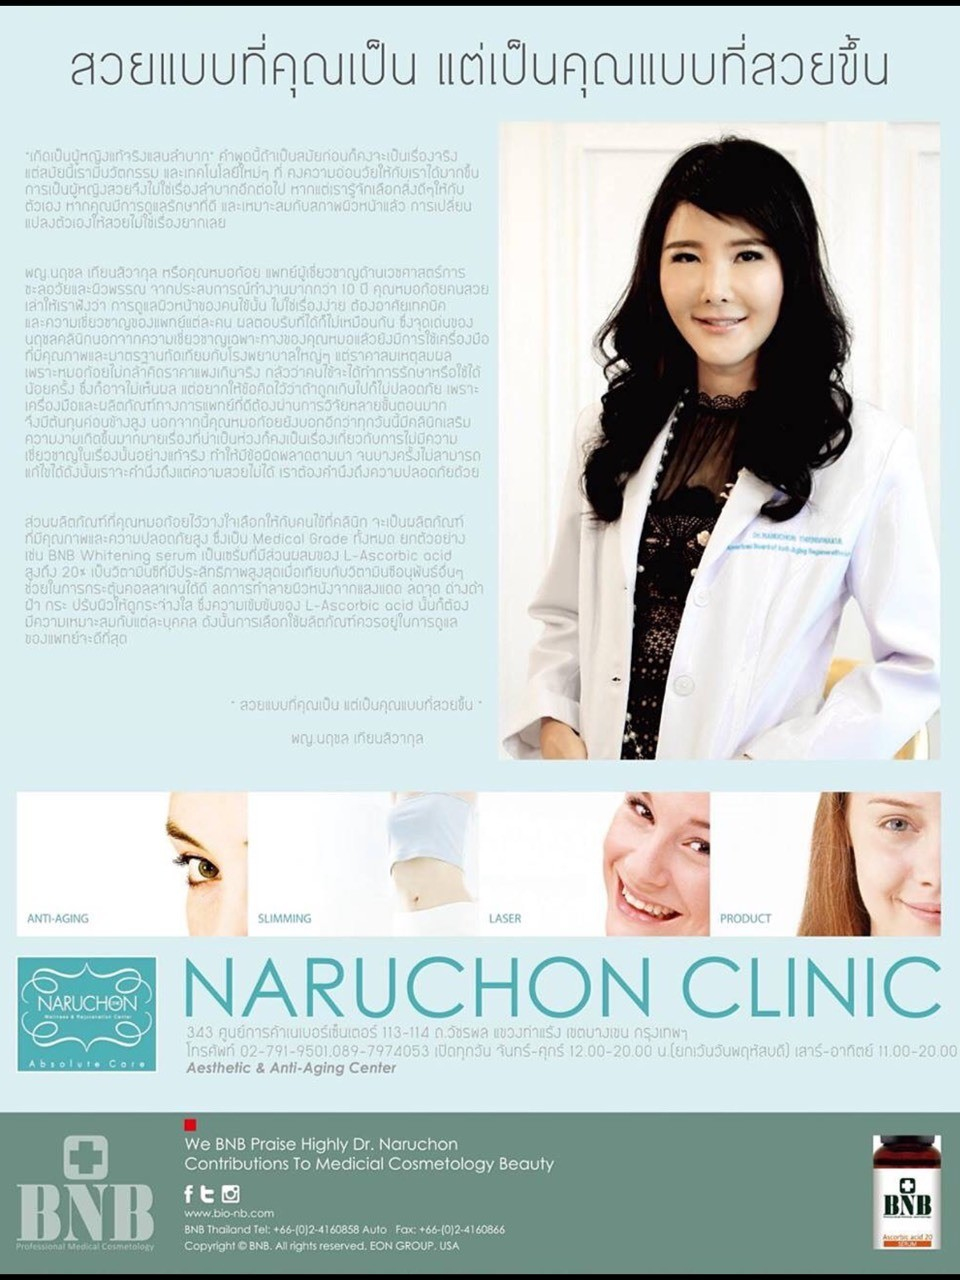 20160105 Dr. Naruchon on ELLE Magazine. BNB (THAILAND) CO., LTD. +66-(0)2-4160858 EON GROUP. USA.